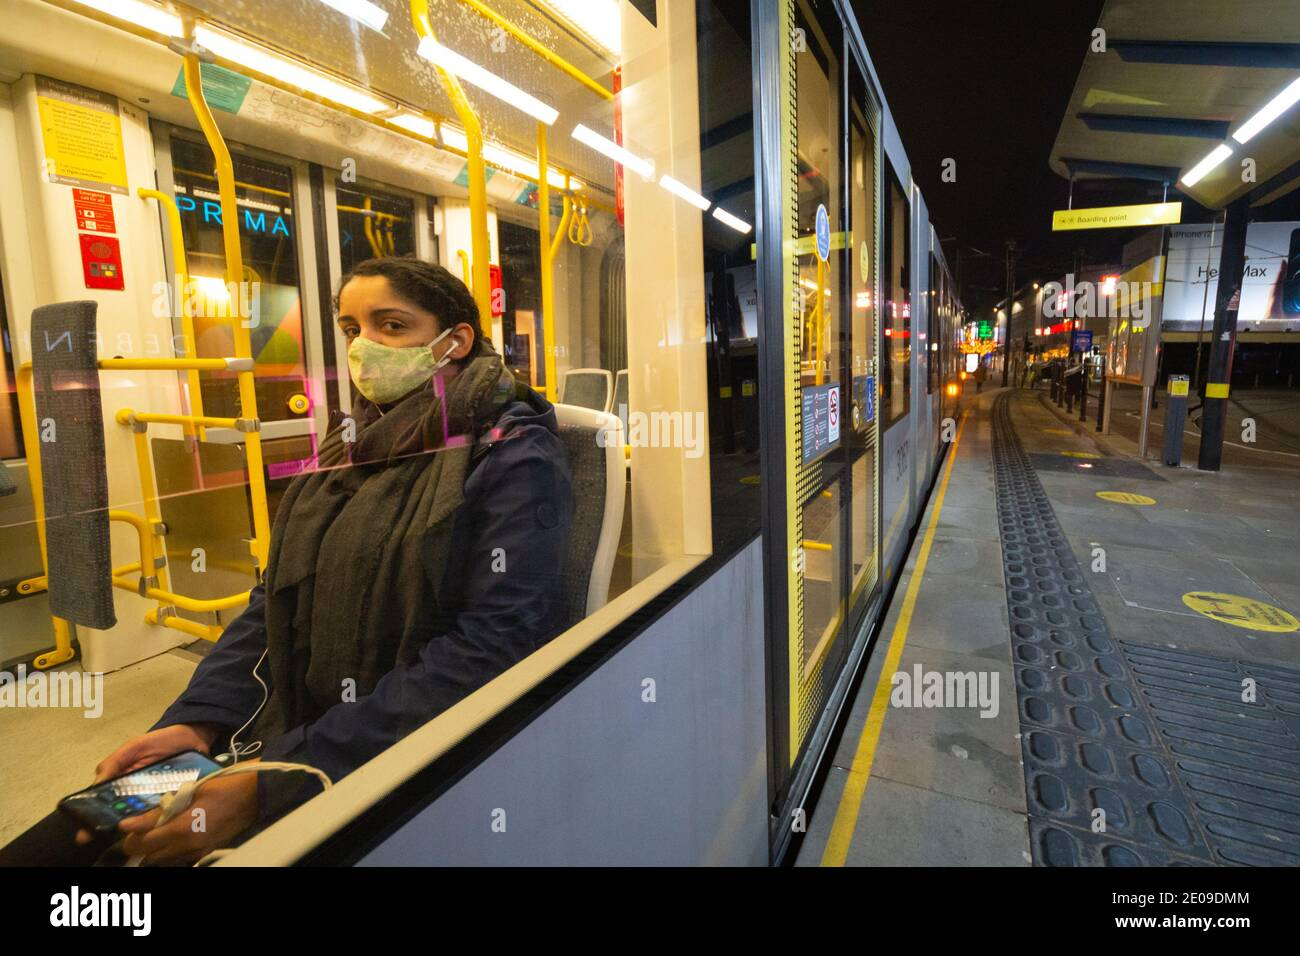 Manchester, England, UK. 30th Dec 2020. Scenes from around Manchester city centre late on the evening of the 30th. At midnight the city will be placed under Tier 4 coronavirus restrictions after a government announcement earlier today. A woman in a tram wearing a face mask makes eye contact. Credit: Callum Fraser/Alamy Live News Stock Photo